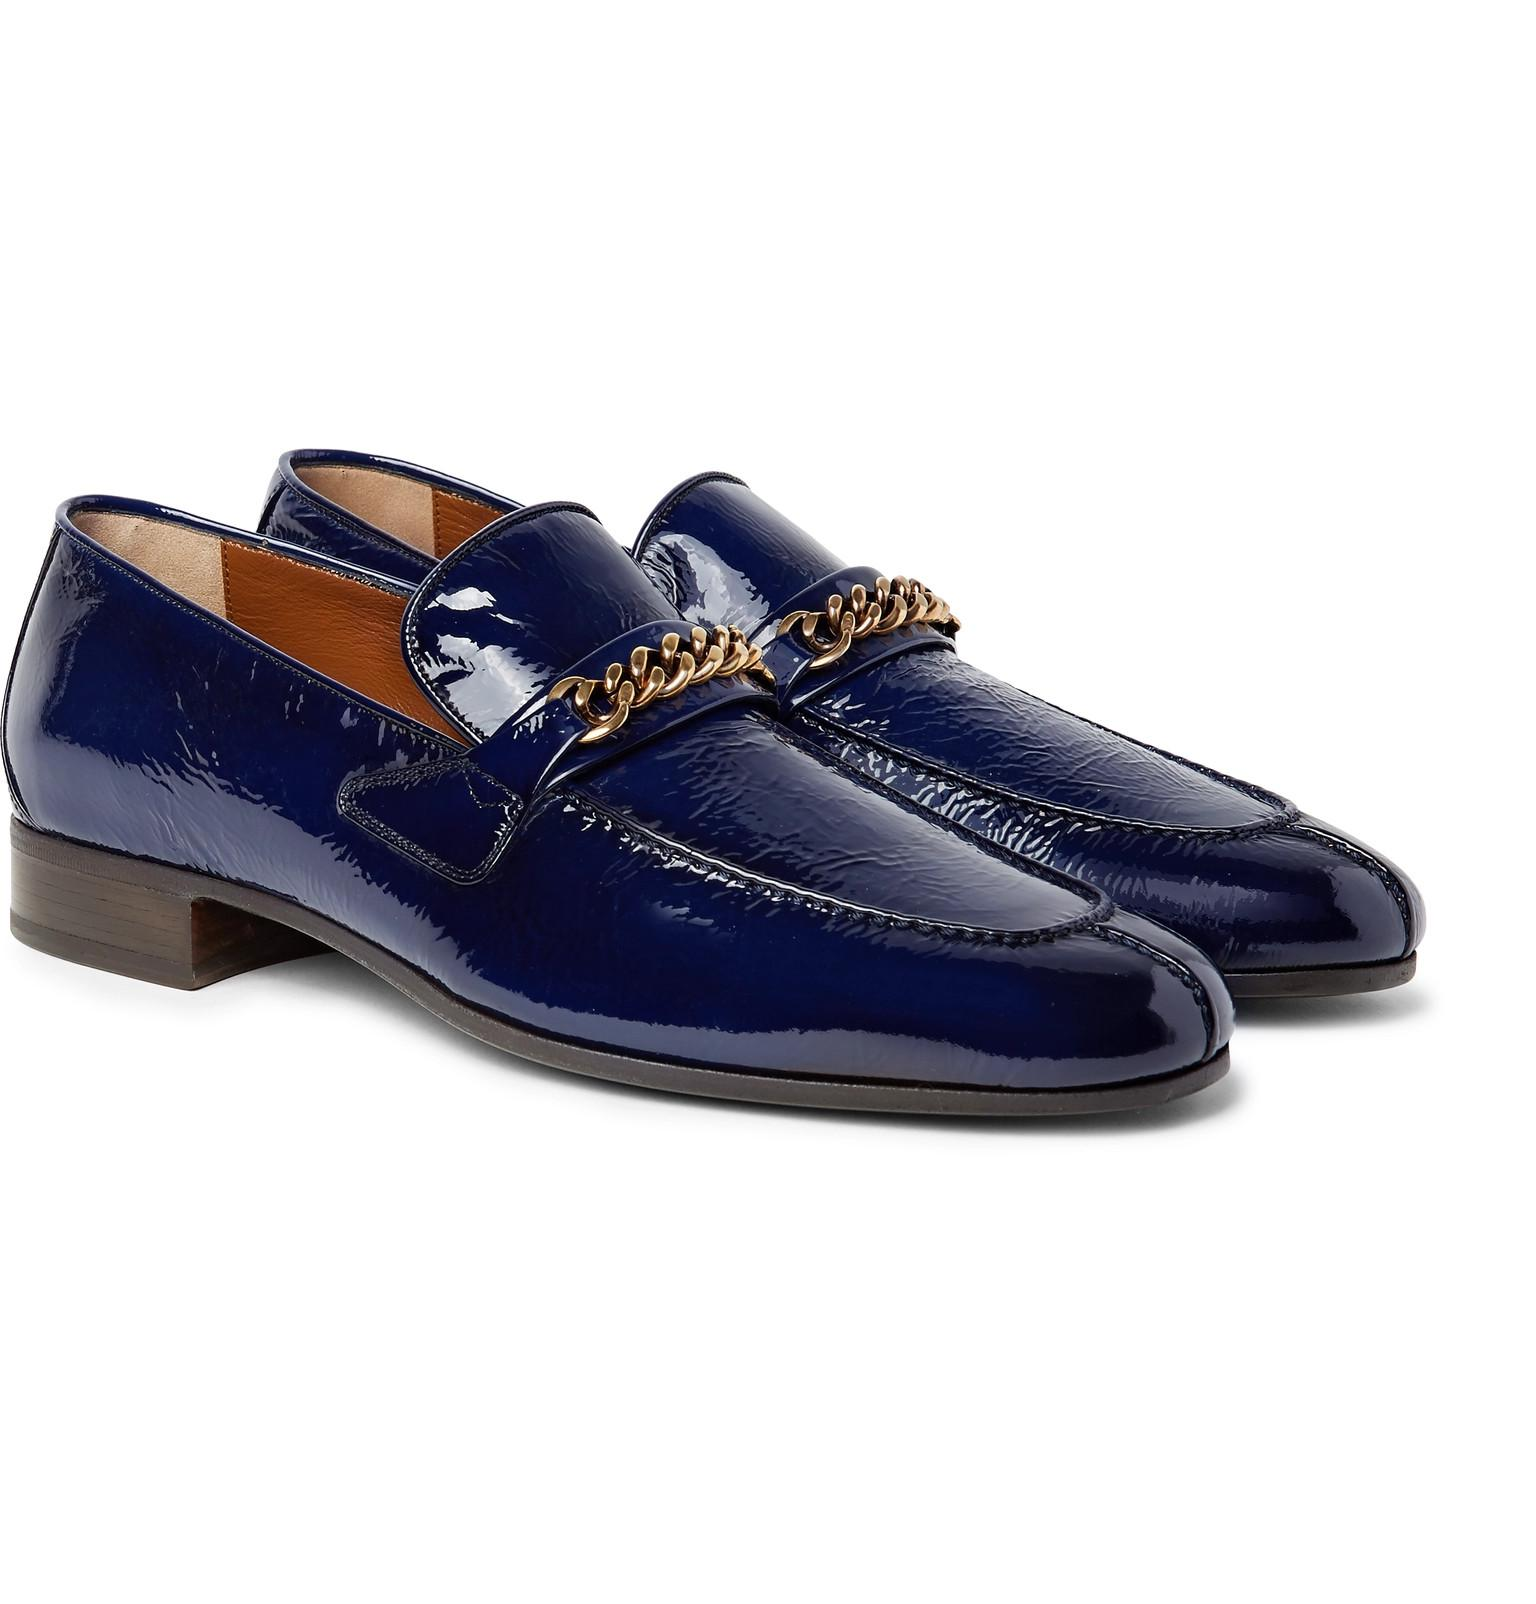 TOM FORD Leeds Chain-Trimmed Velvet Loafers cheap perfect clearance get authentic cheap with mastercard j5B92fp